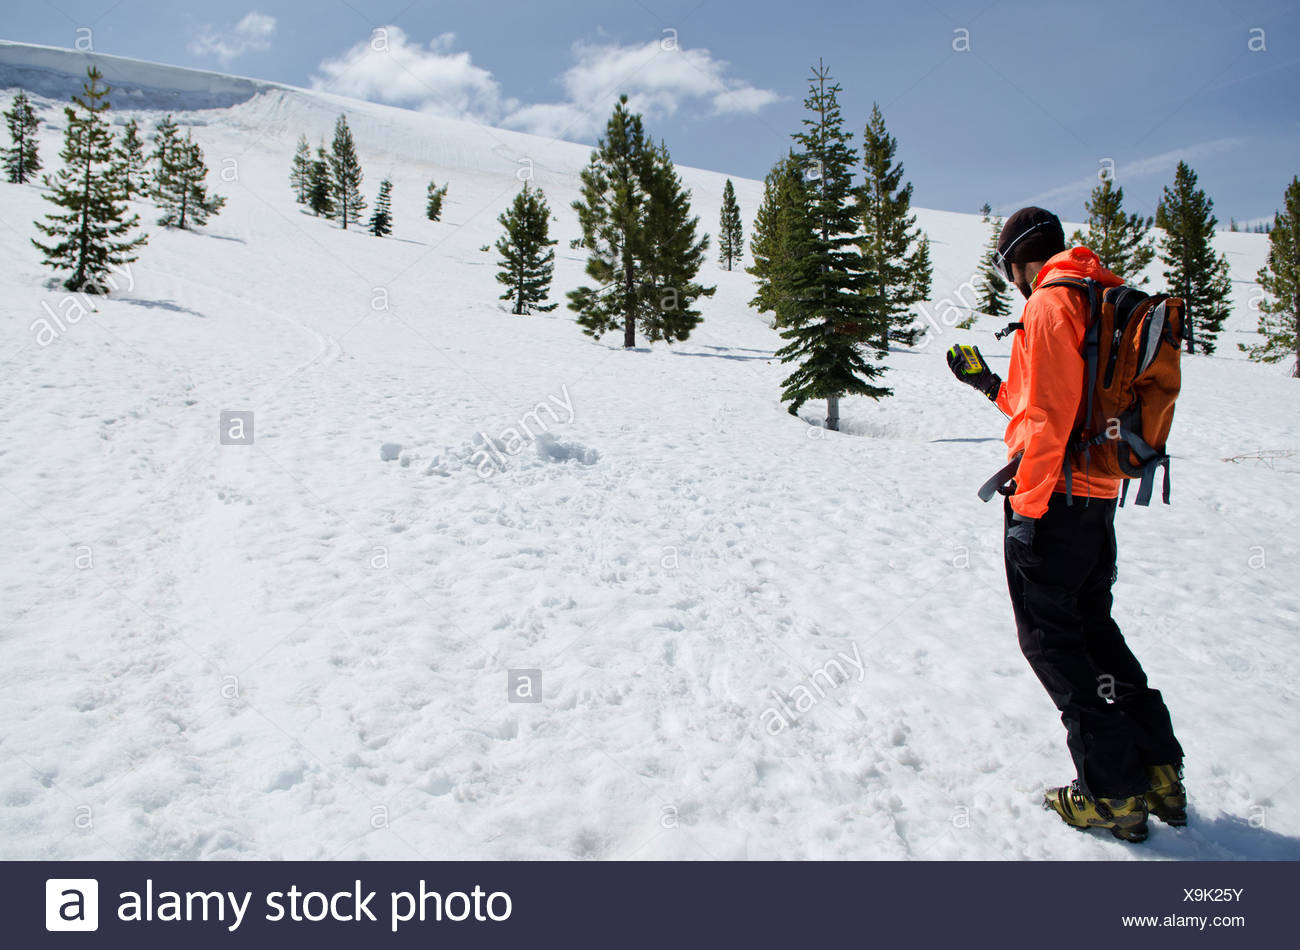 A young man practices avalanche training in Truckee, California. - Stock Image